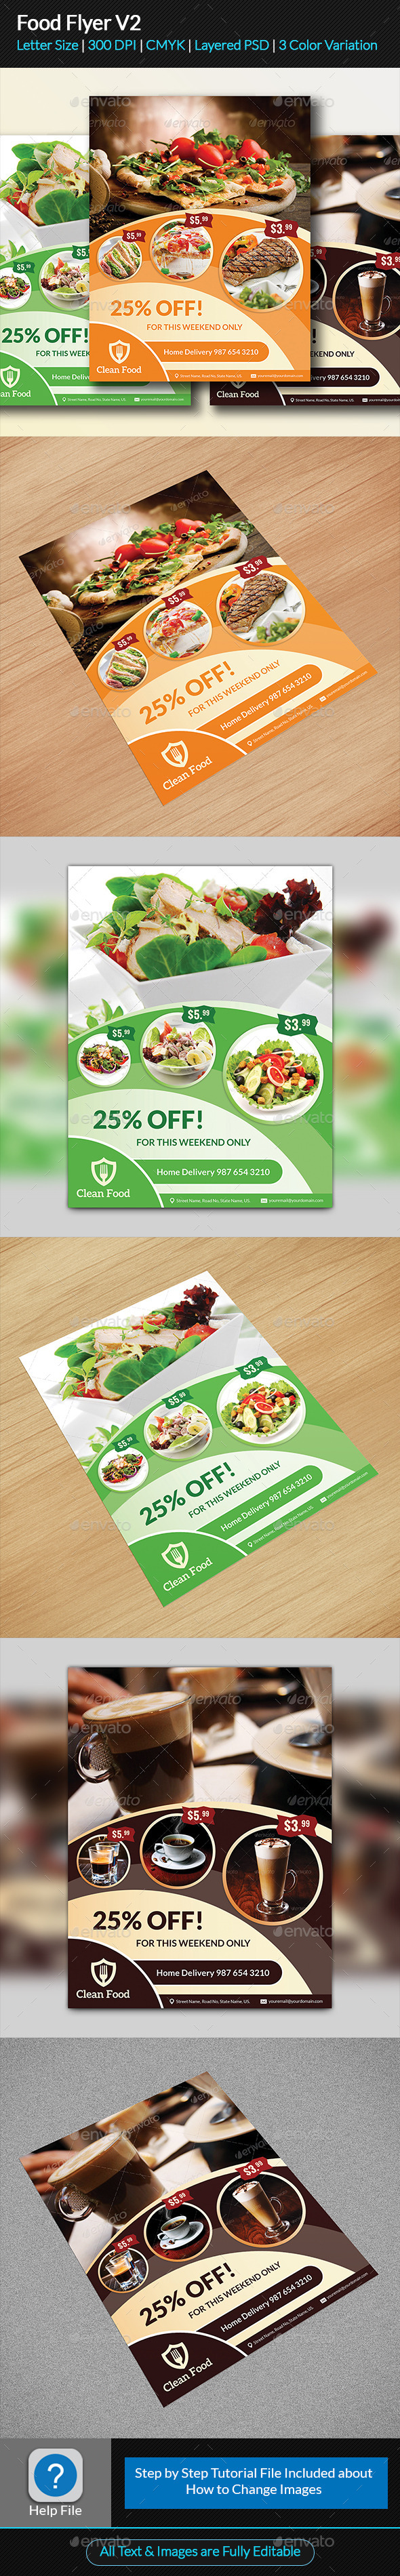 Food Flyer V2 - Restaurant Flyers